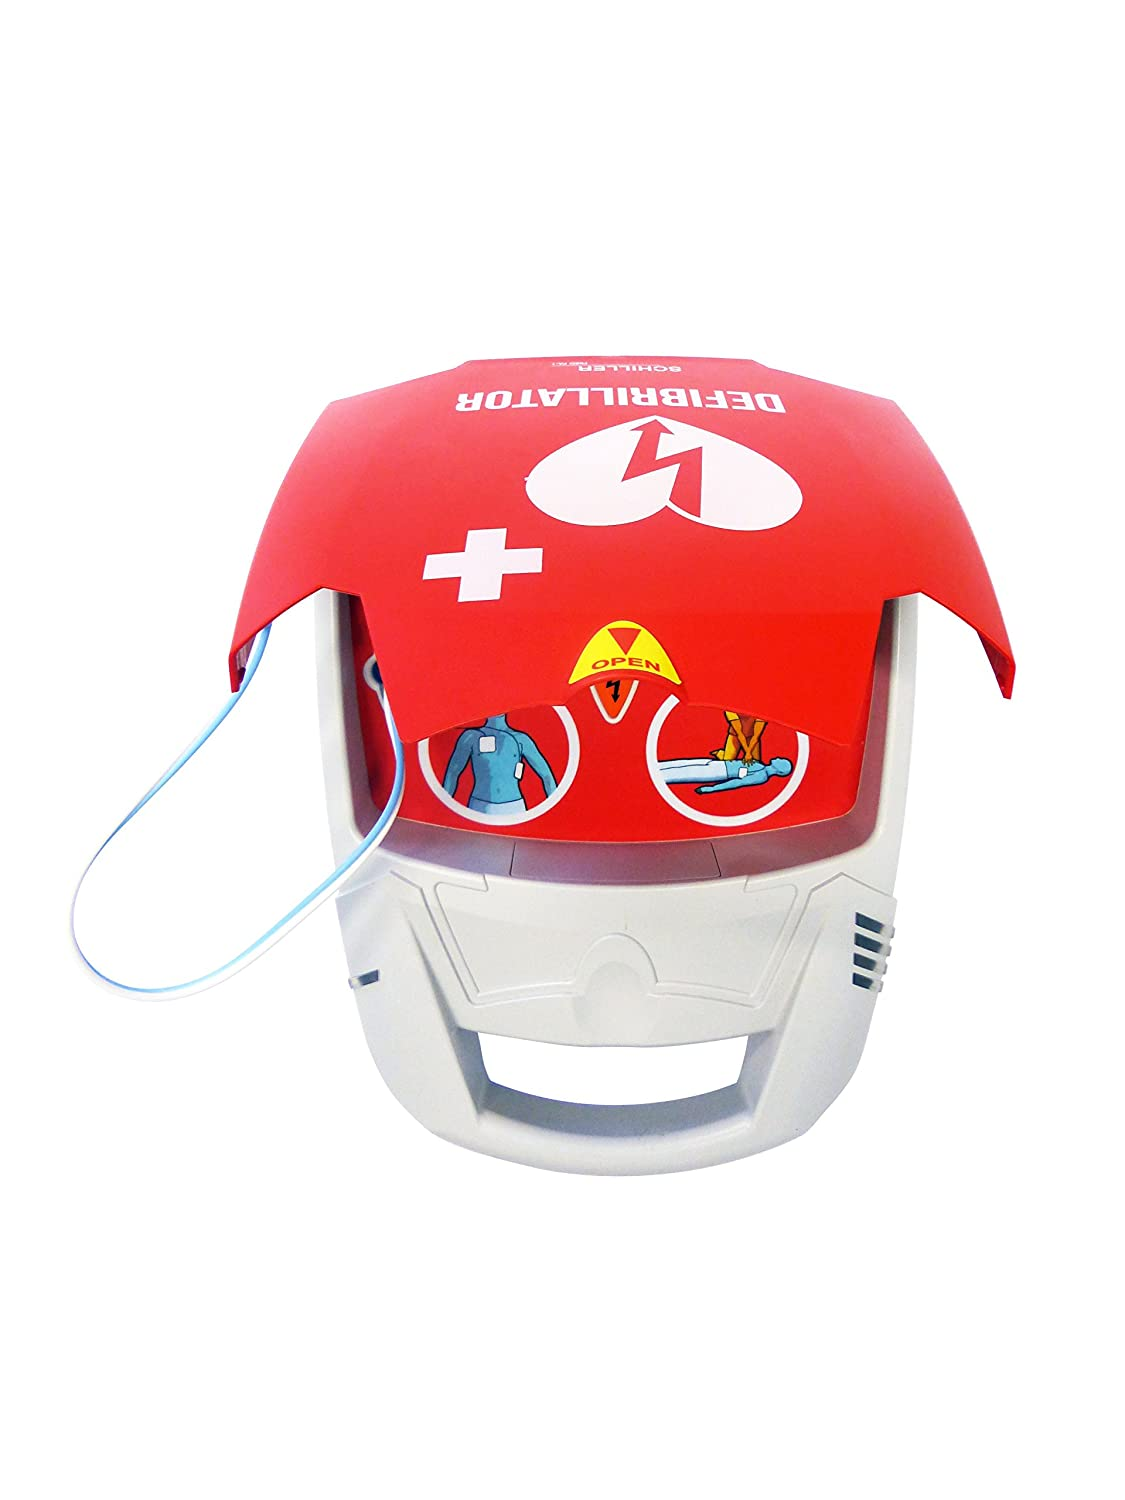 FRED PA-1* PROMOTION Fully Automatic Public Access Defibrillator